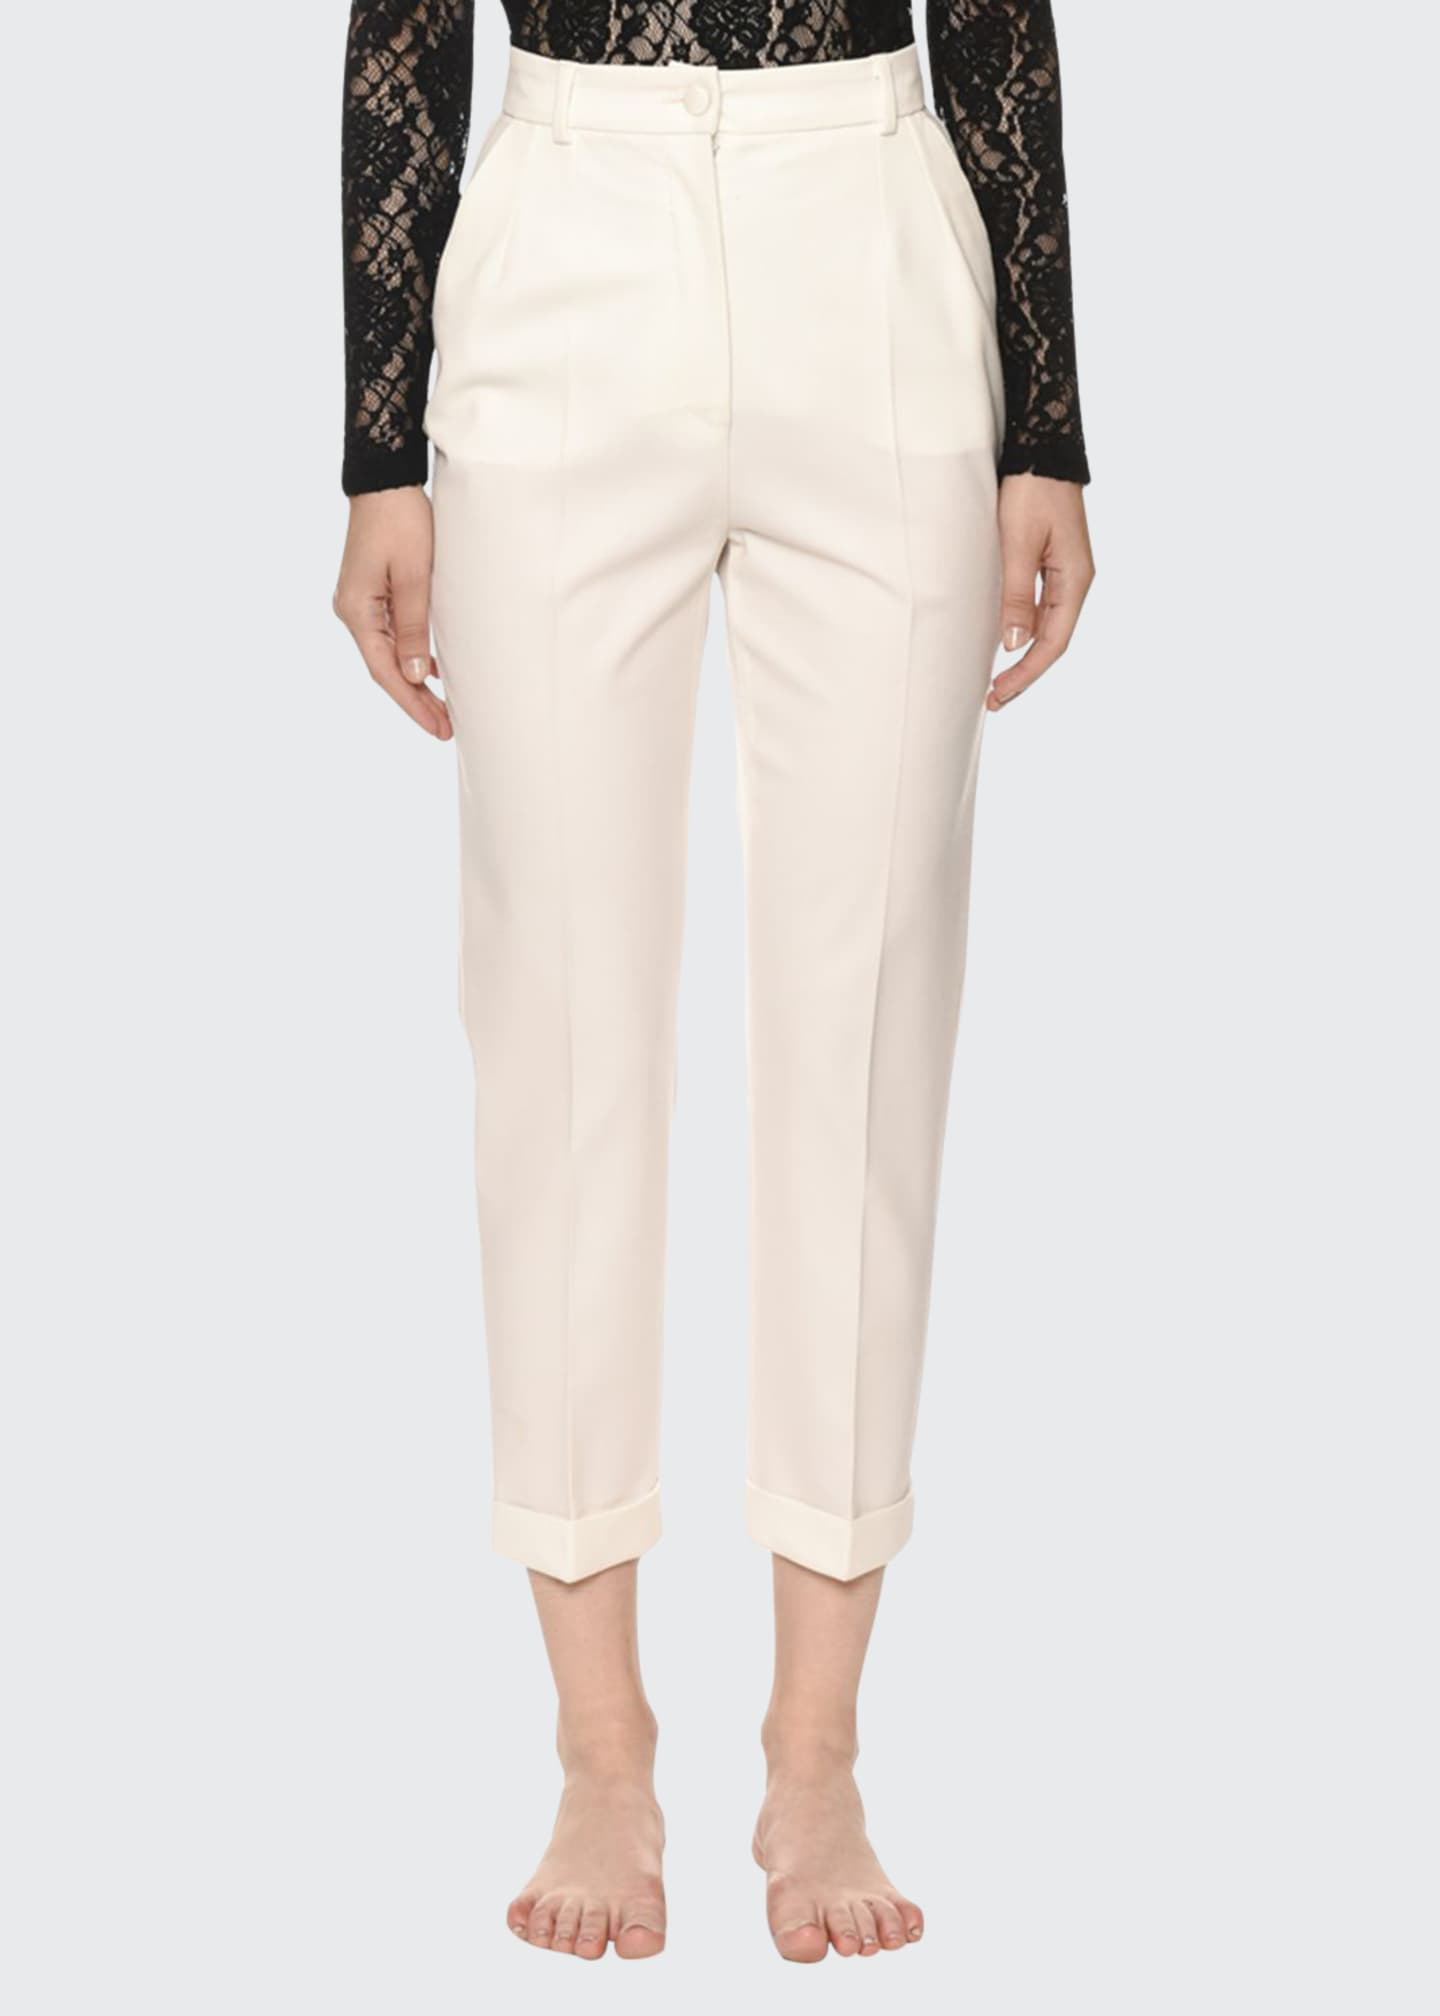 Dolce & Gabbana Kate Classic High-Rise Pants